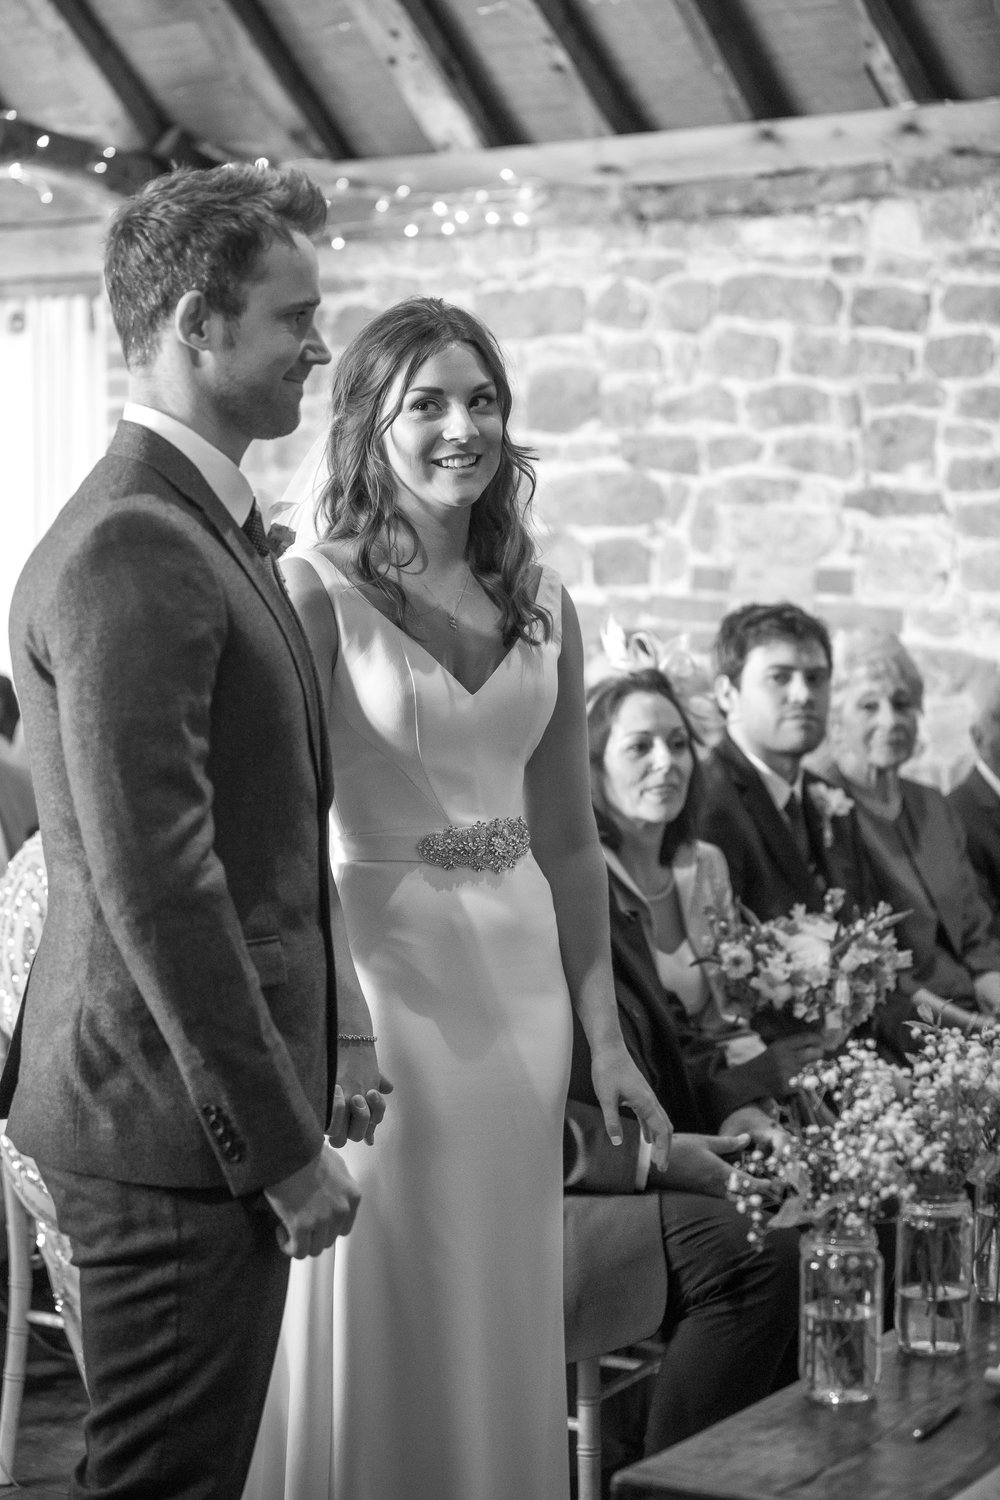 Grittenham Barn female wedding photographers west sussex petworth social-55.jpg